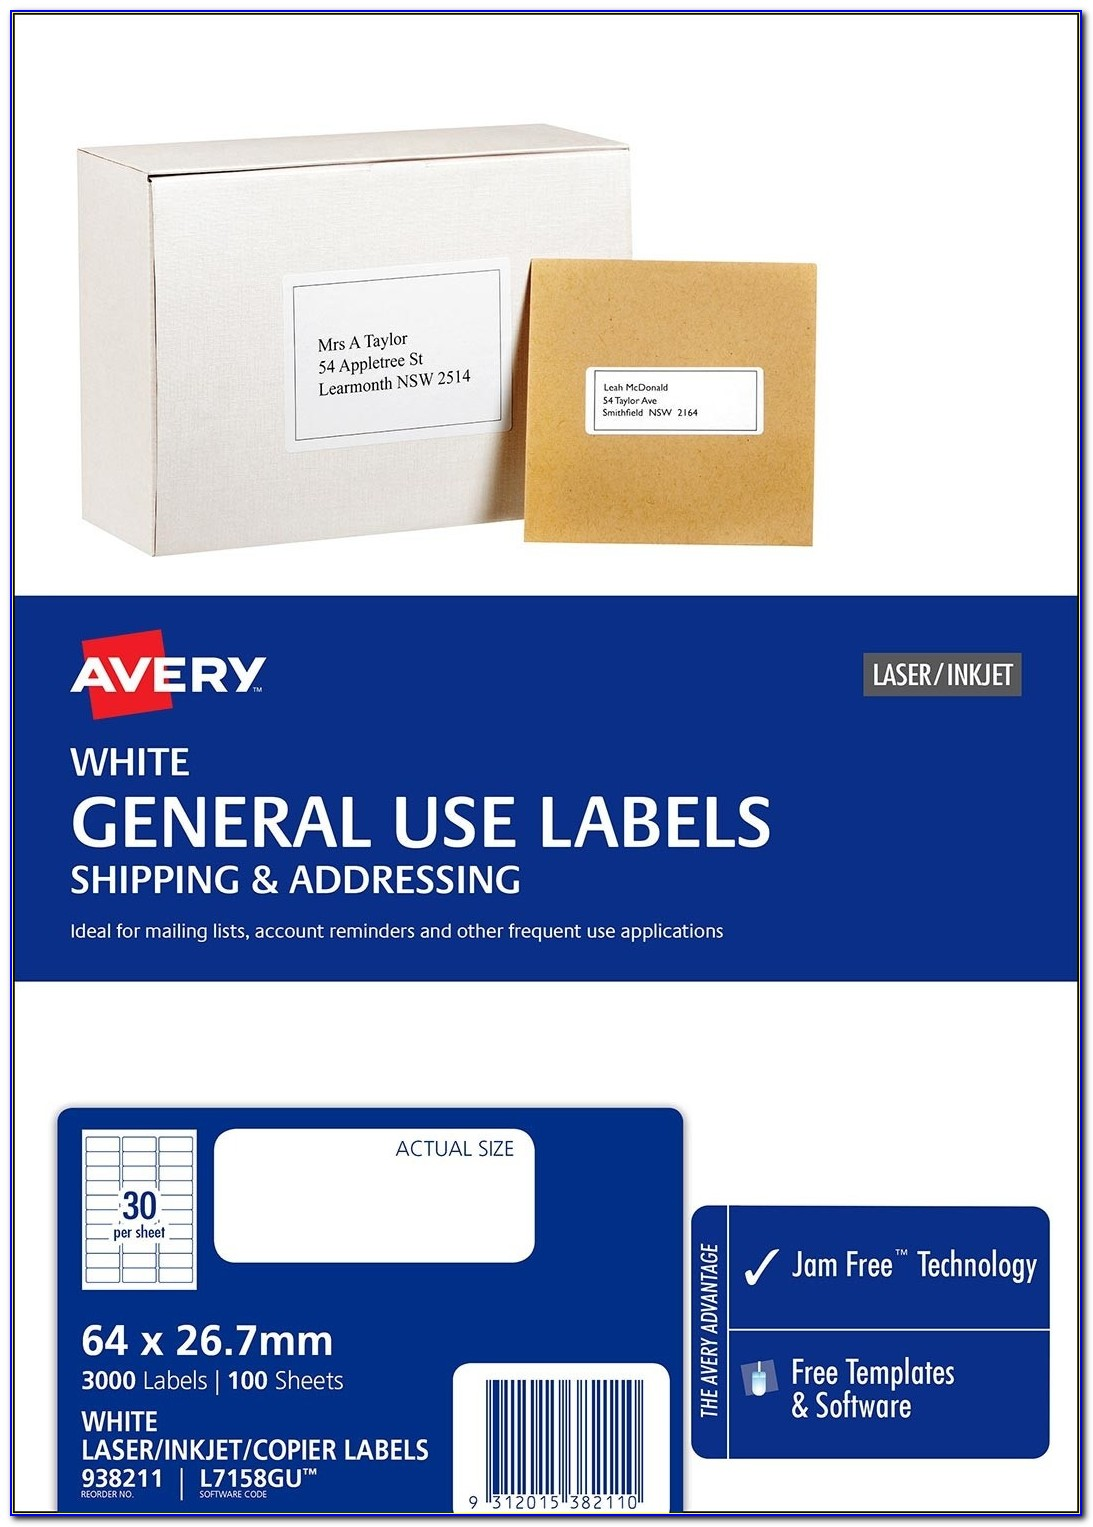 Avery Label Template 5160 Free